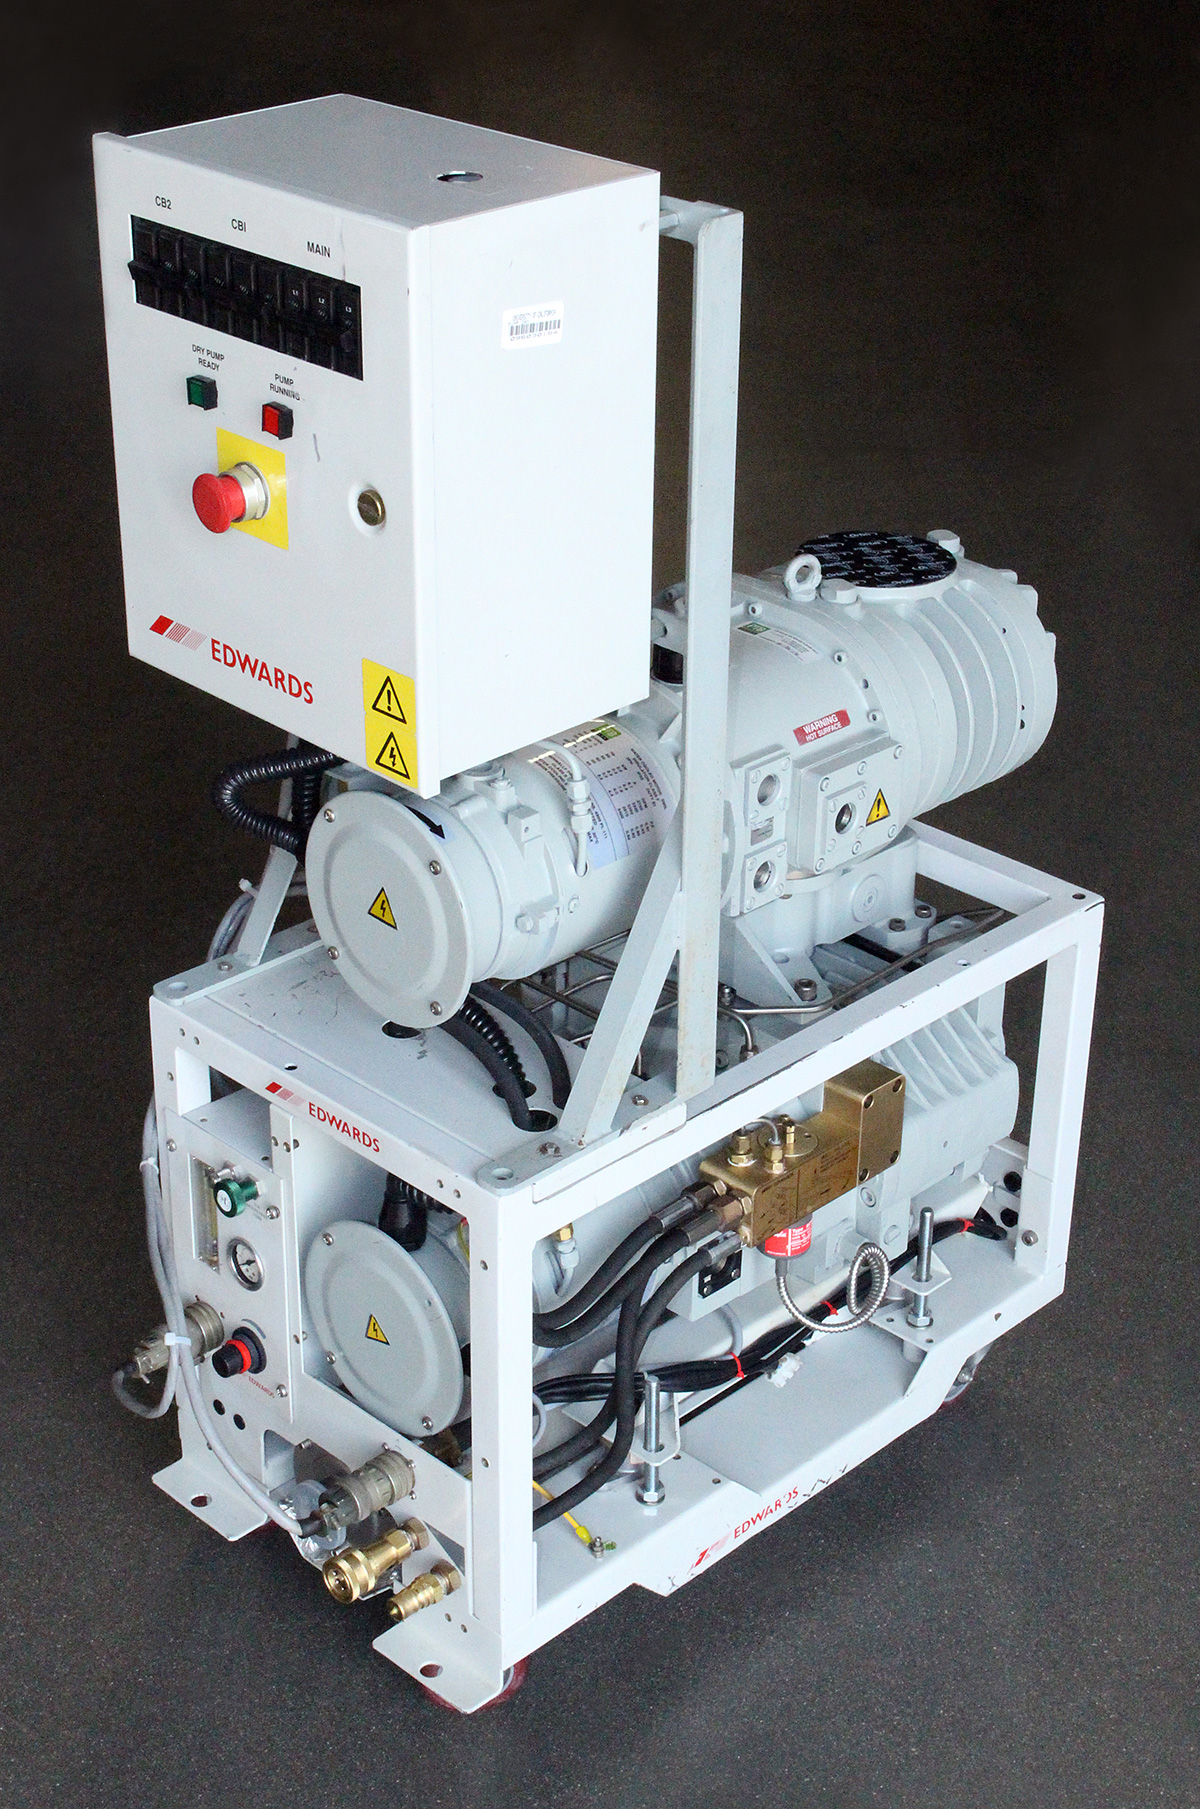 Vacuum And Blower Systems : Edwards qdp qmb vacuum blower system rebuilt